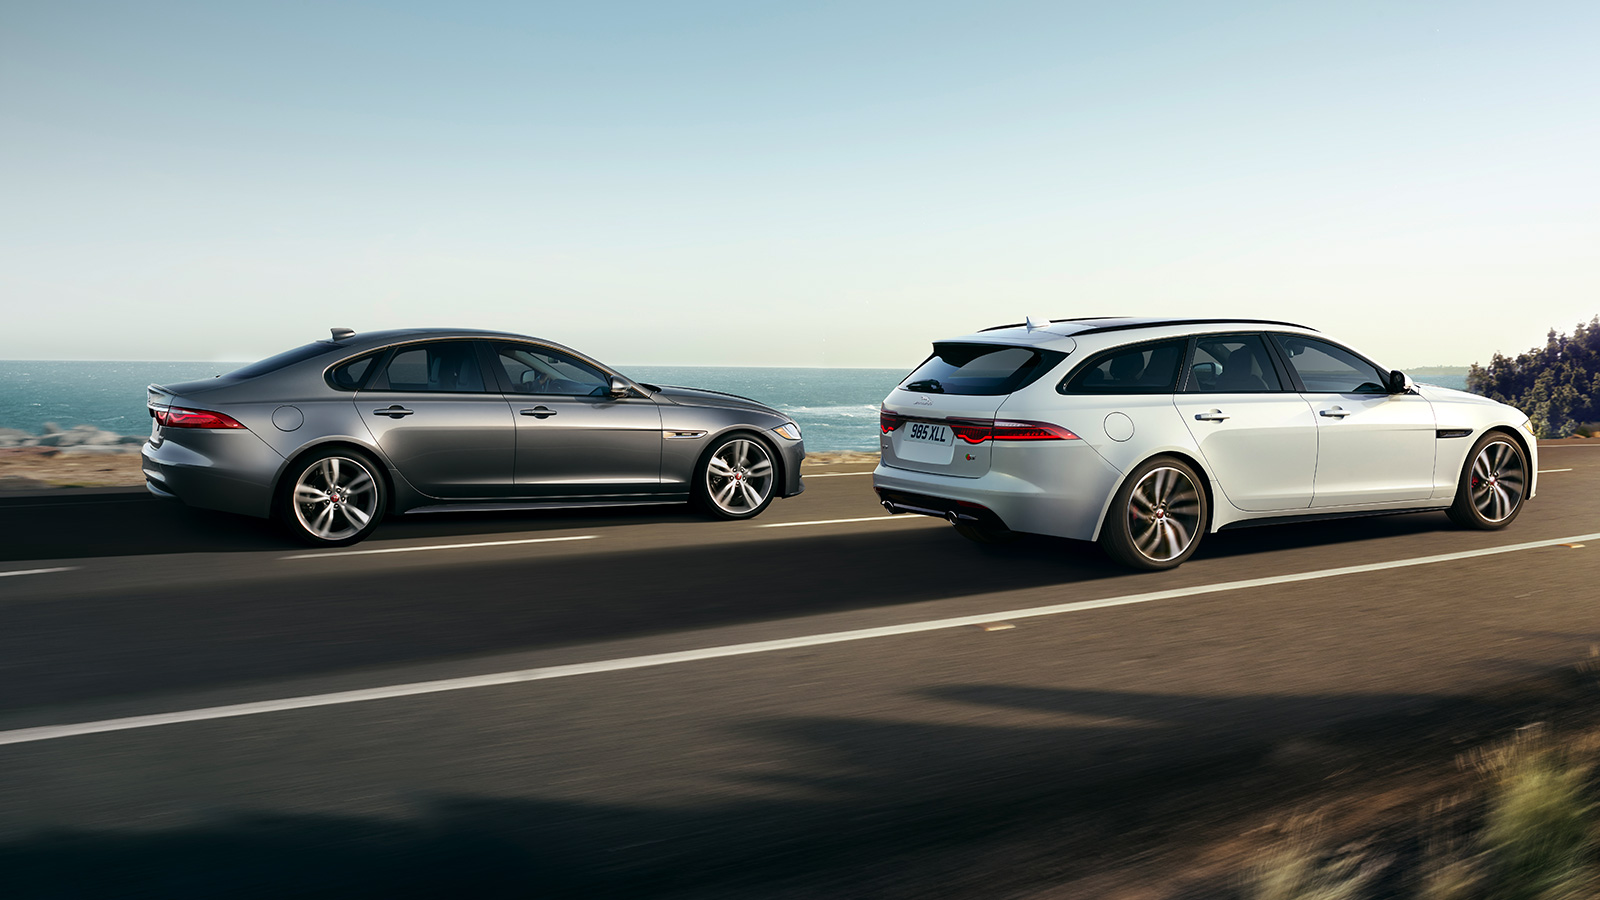 Two Jaguars driving by the sea.